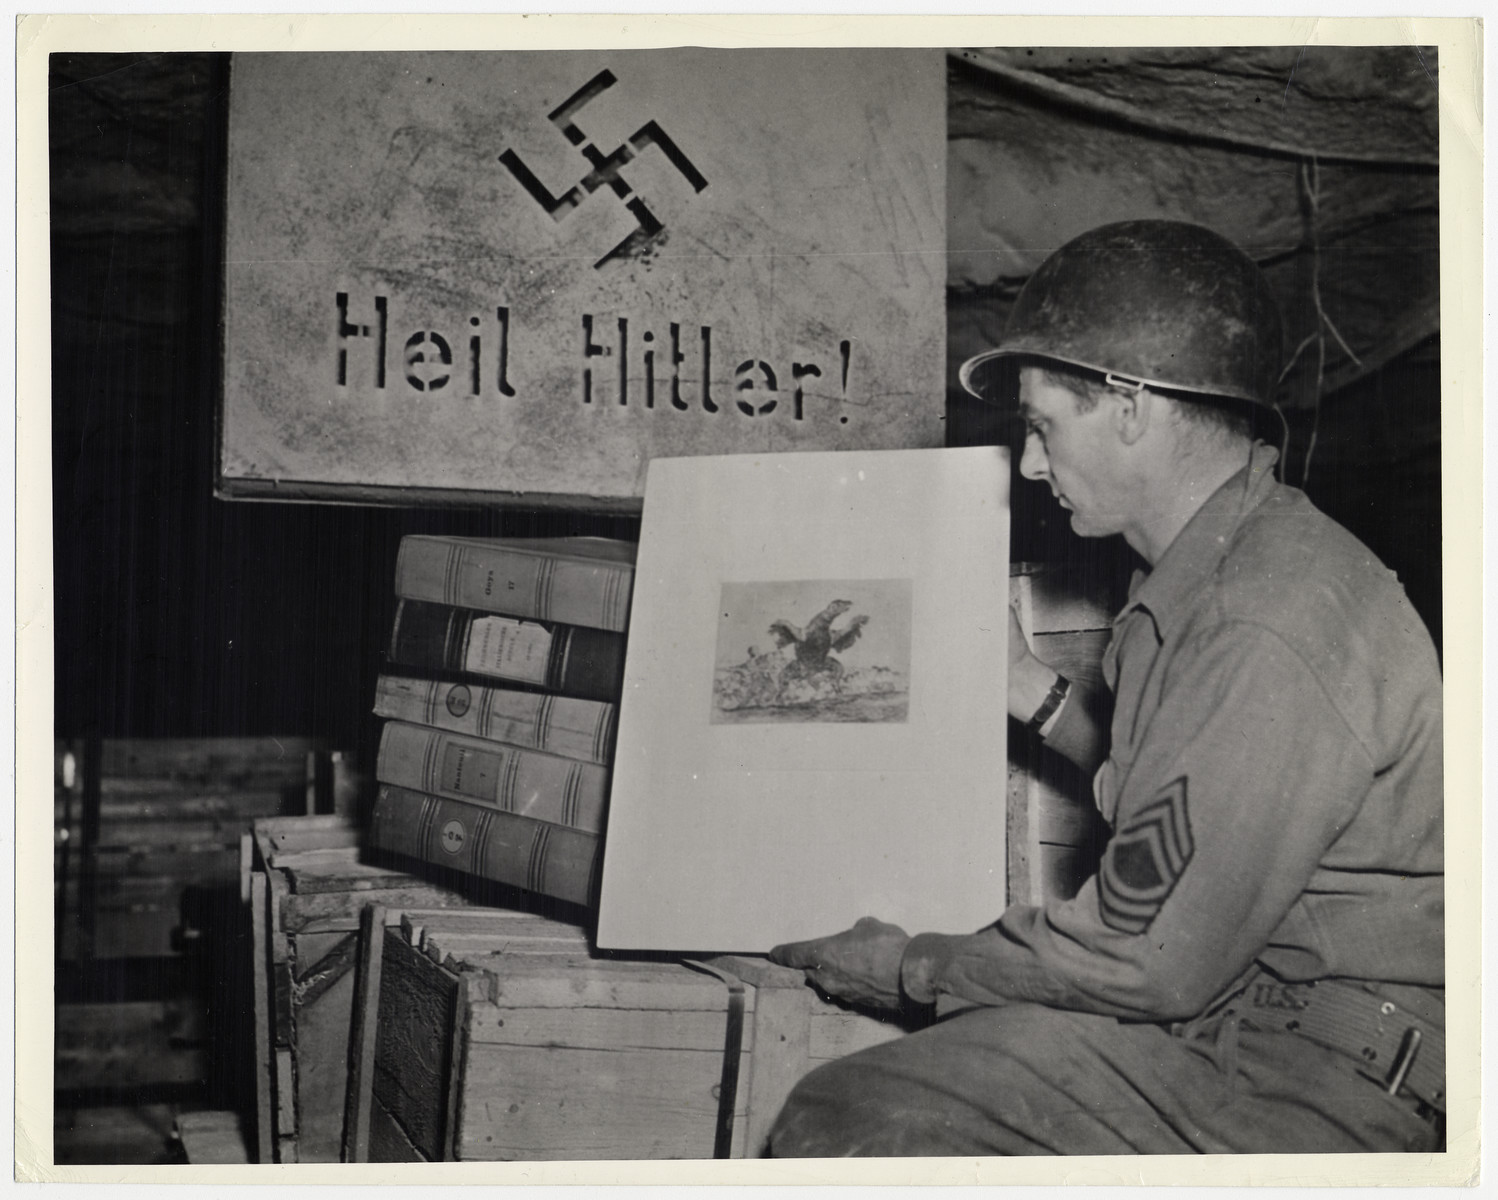 """Third U.S. Army discovers looted art treasures hidden by Nazis in a salt mine.    The original caption reads: """"Priceless art treasures and what is believed to be the entire gold reserve of the German Reichebank were discovered in a salt mine in Merkers,  Germany, by troops of the 90th Division, Third U.S. Army, April 7, 1946. The day after the capture of the mine, south of Mullhausen, Third Army engineers blasted a hole through a brick wall of an underground vault and found original paintings by Raphael, Rembrandt, Van Dyke and Durer as well as Goethe manuscripts.""""  THIS PHOTO SHOWS: Sergeant Harold Maus of Scranton, Pennsylvania, examines a painting by the 18th Century Spanish arist Goya, Above the art treasure is a stencil for Hitler signs, U. S. Signal Corps Photo ETO-HQ-45-32060."""